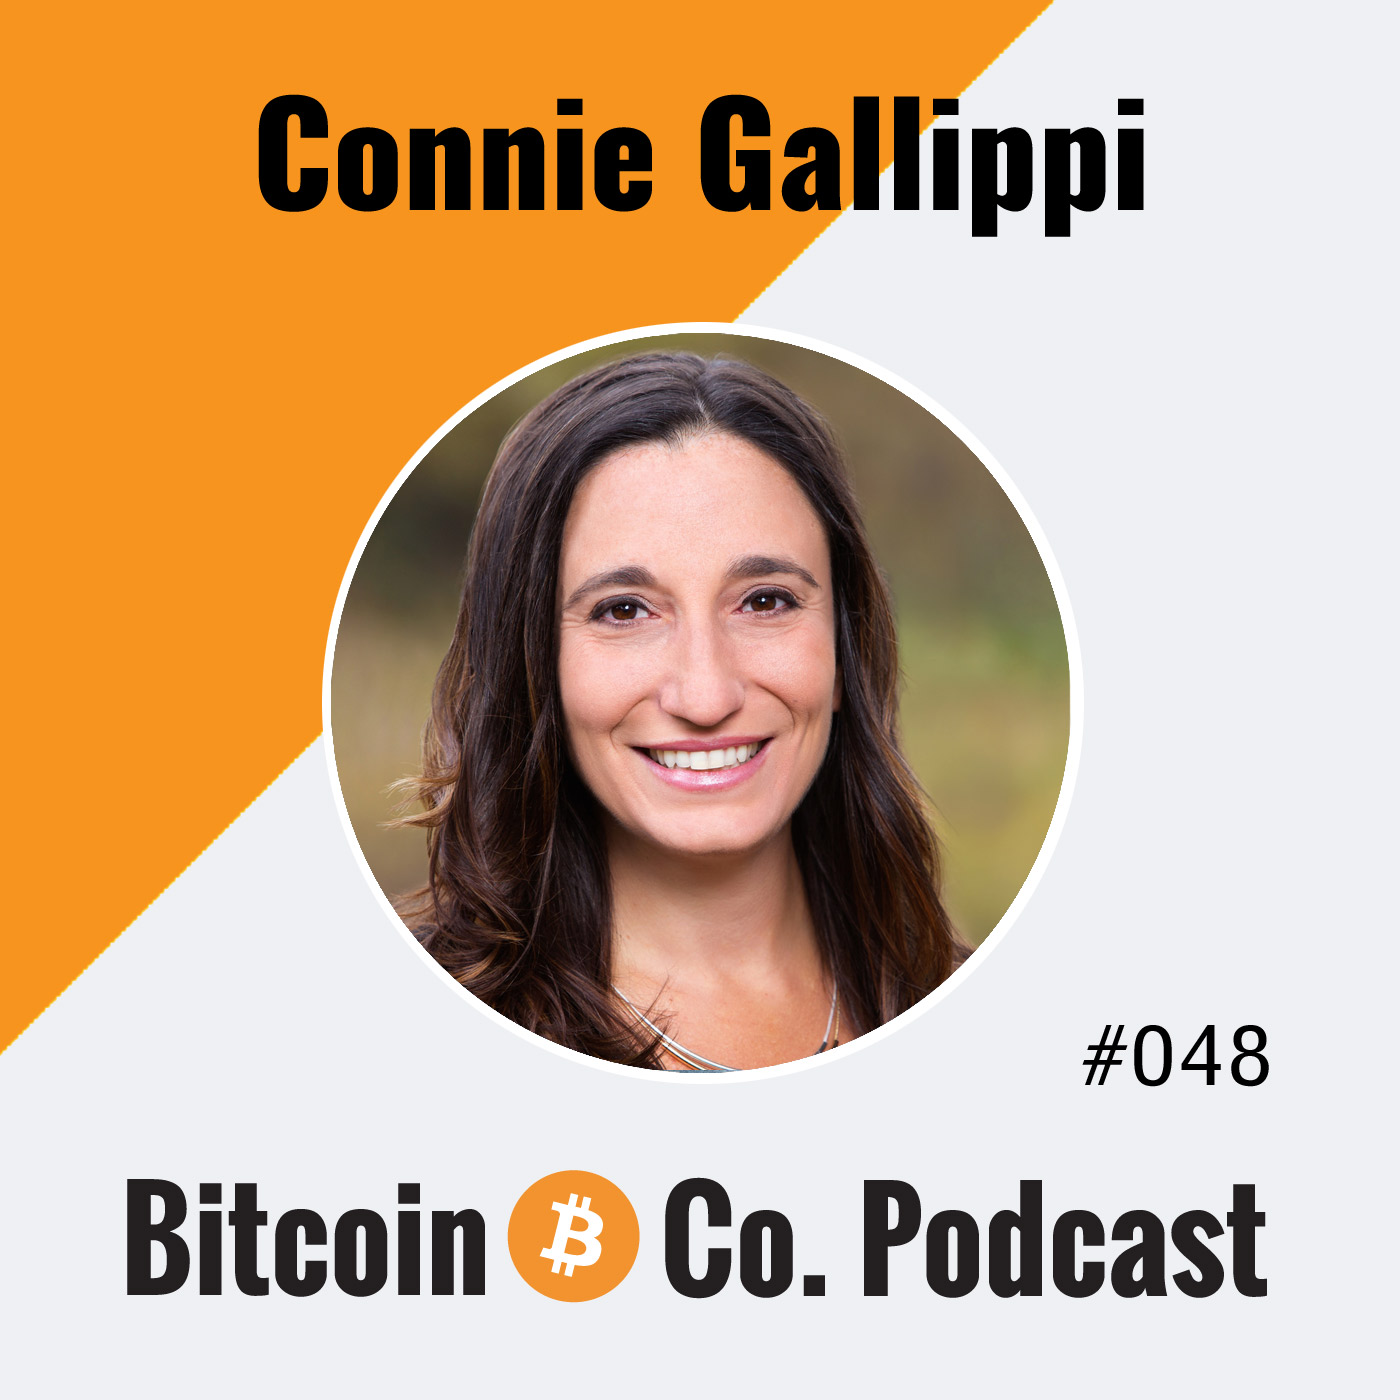 Connie Gallippi: A Pioneer Bridging the Gap Between the Non-Profit Space and Bitcoin